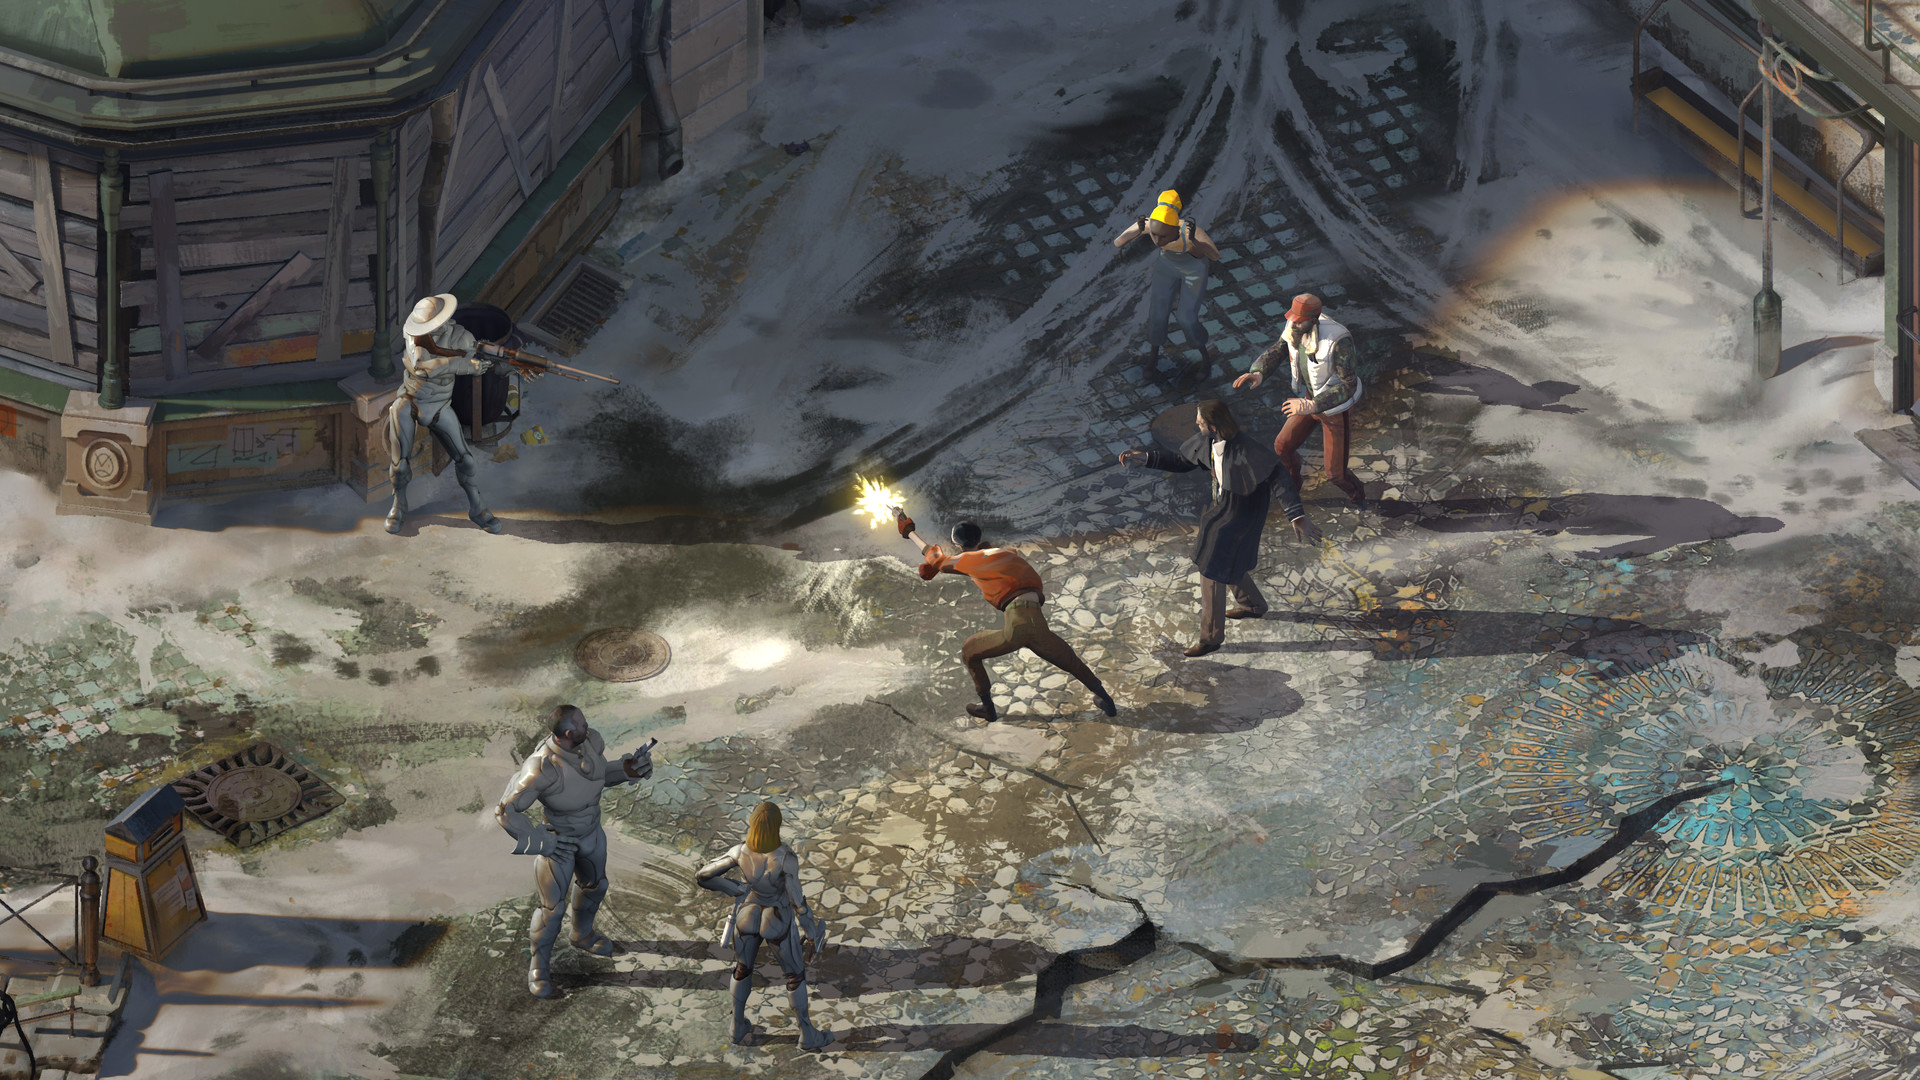 Characters from video game, Disco Elysium, in a shoot out